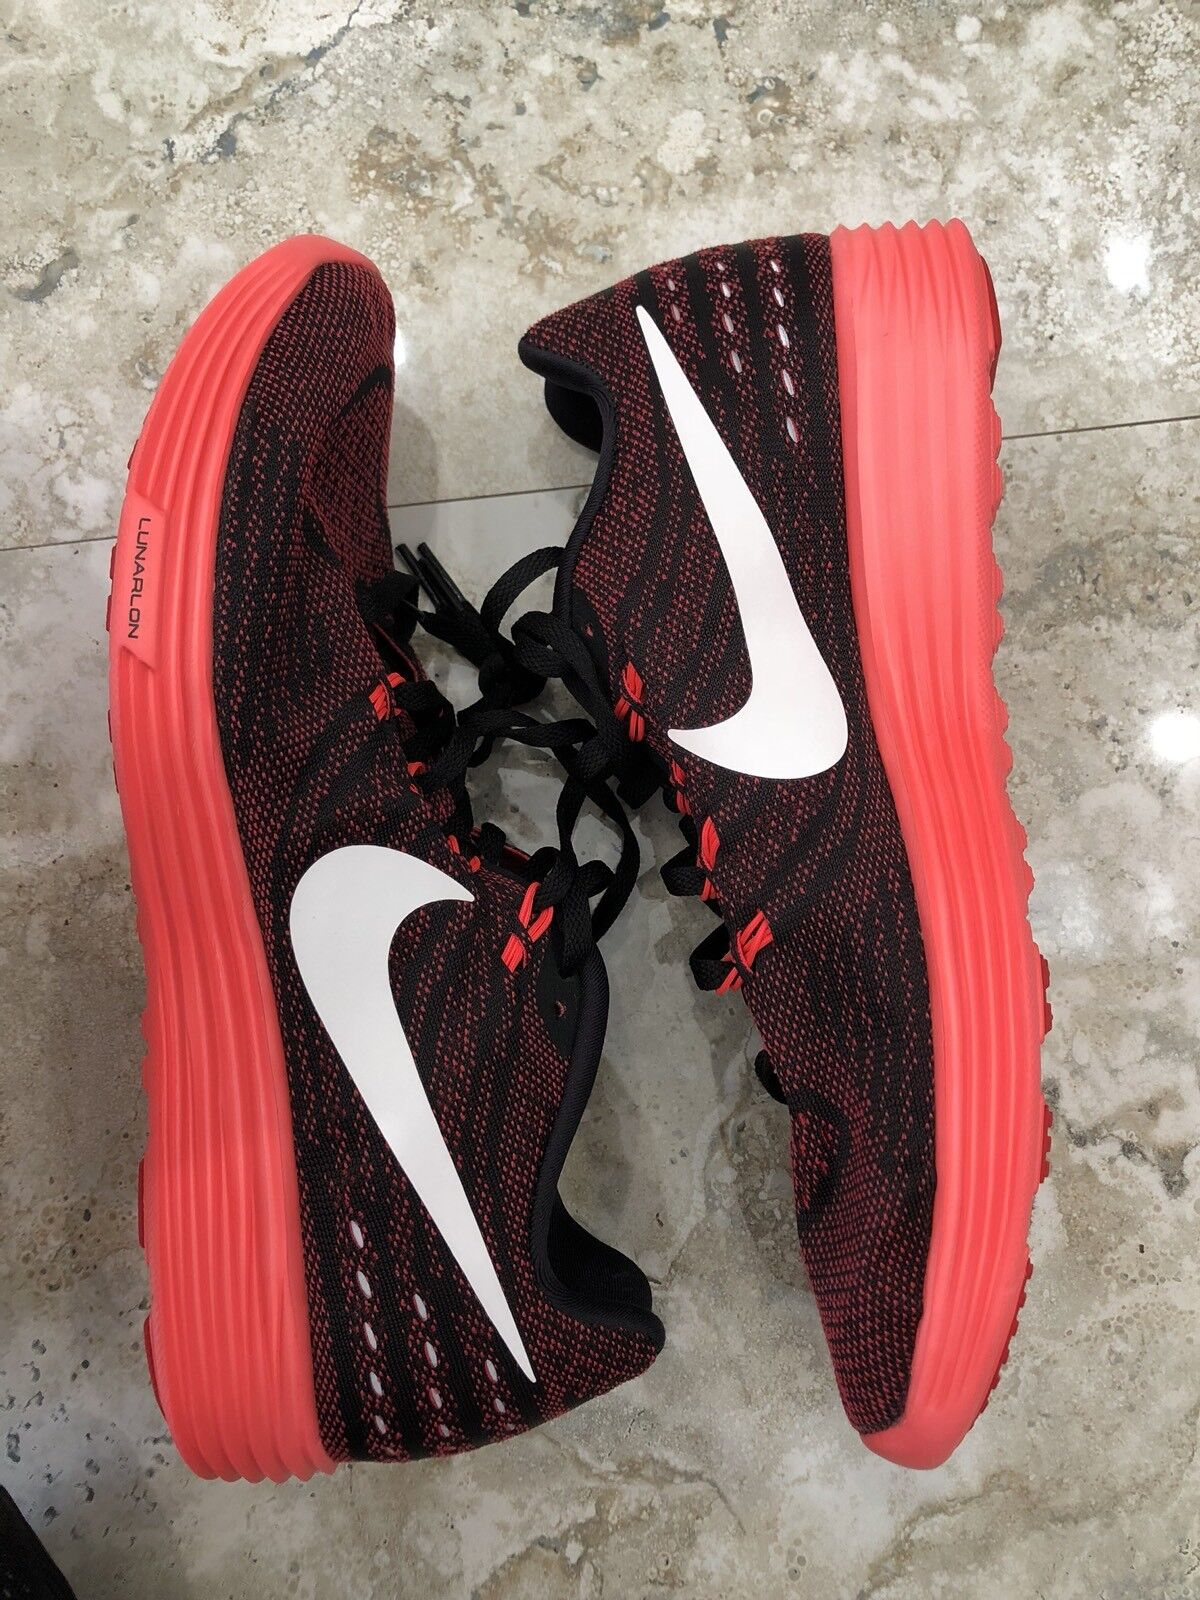 sale retailer fd21c 58e90 Nike Nike Nike Lunartempo 2 Running Shoes NEW Red Black Crimson White (MSRP   110) Size 8.5 da2584